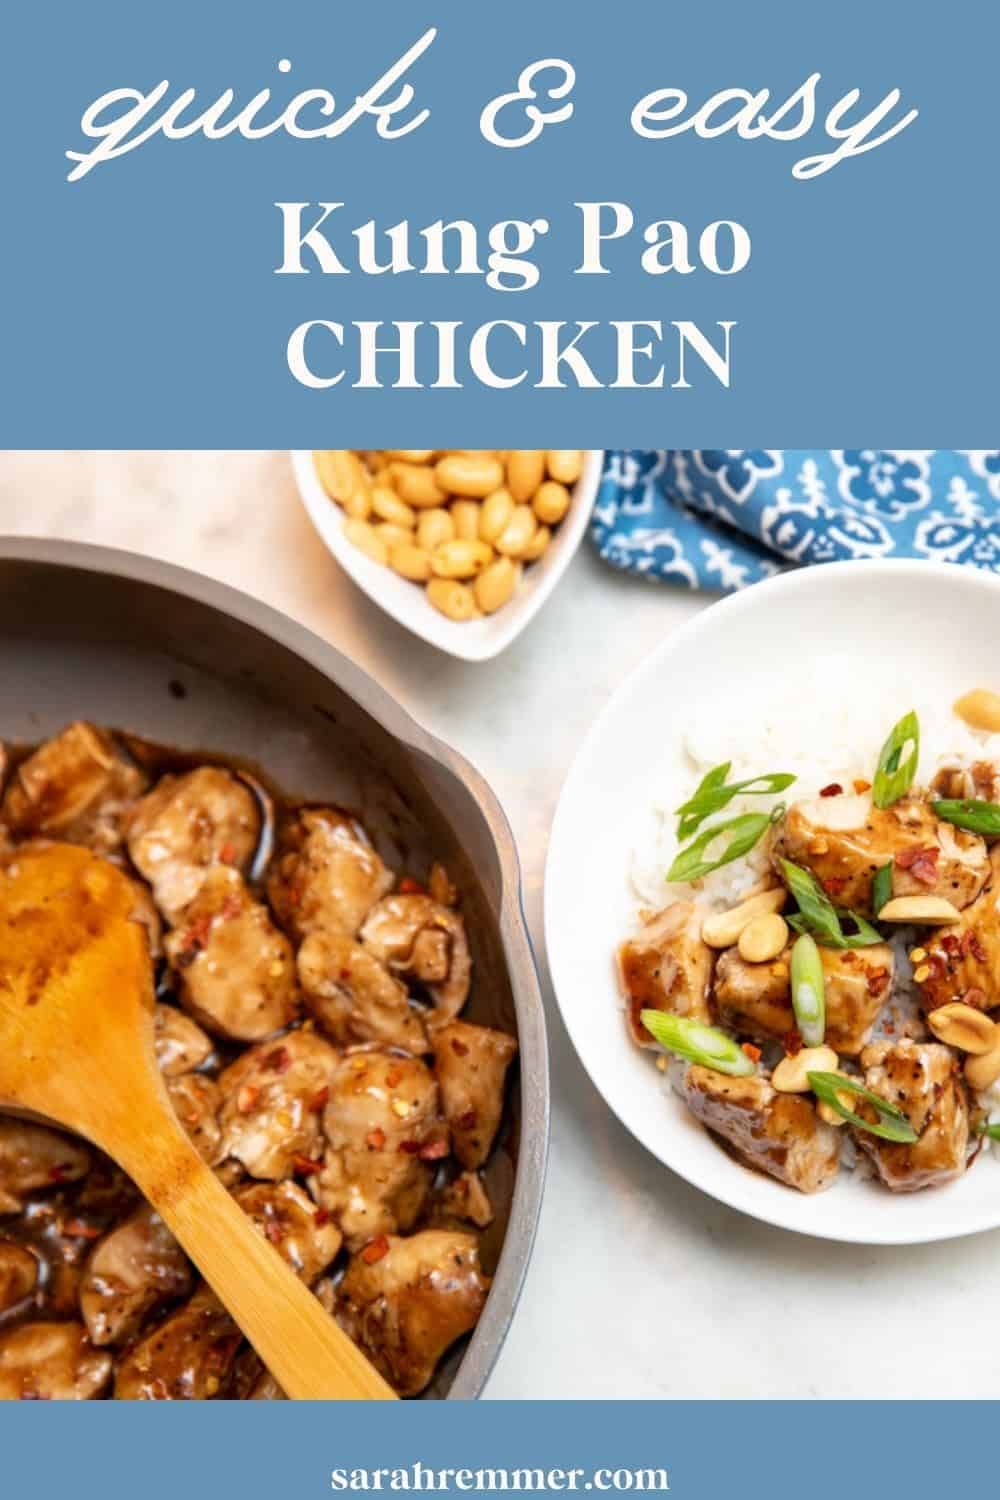 Don't bother ordering in, this Kung Pao chicken recipe is delicious, quick, easy and healthy. Can't beat that!